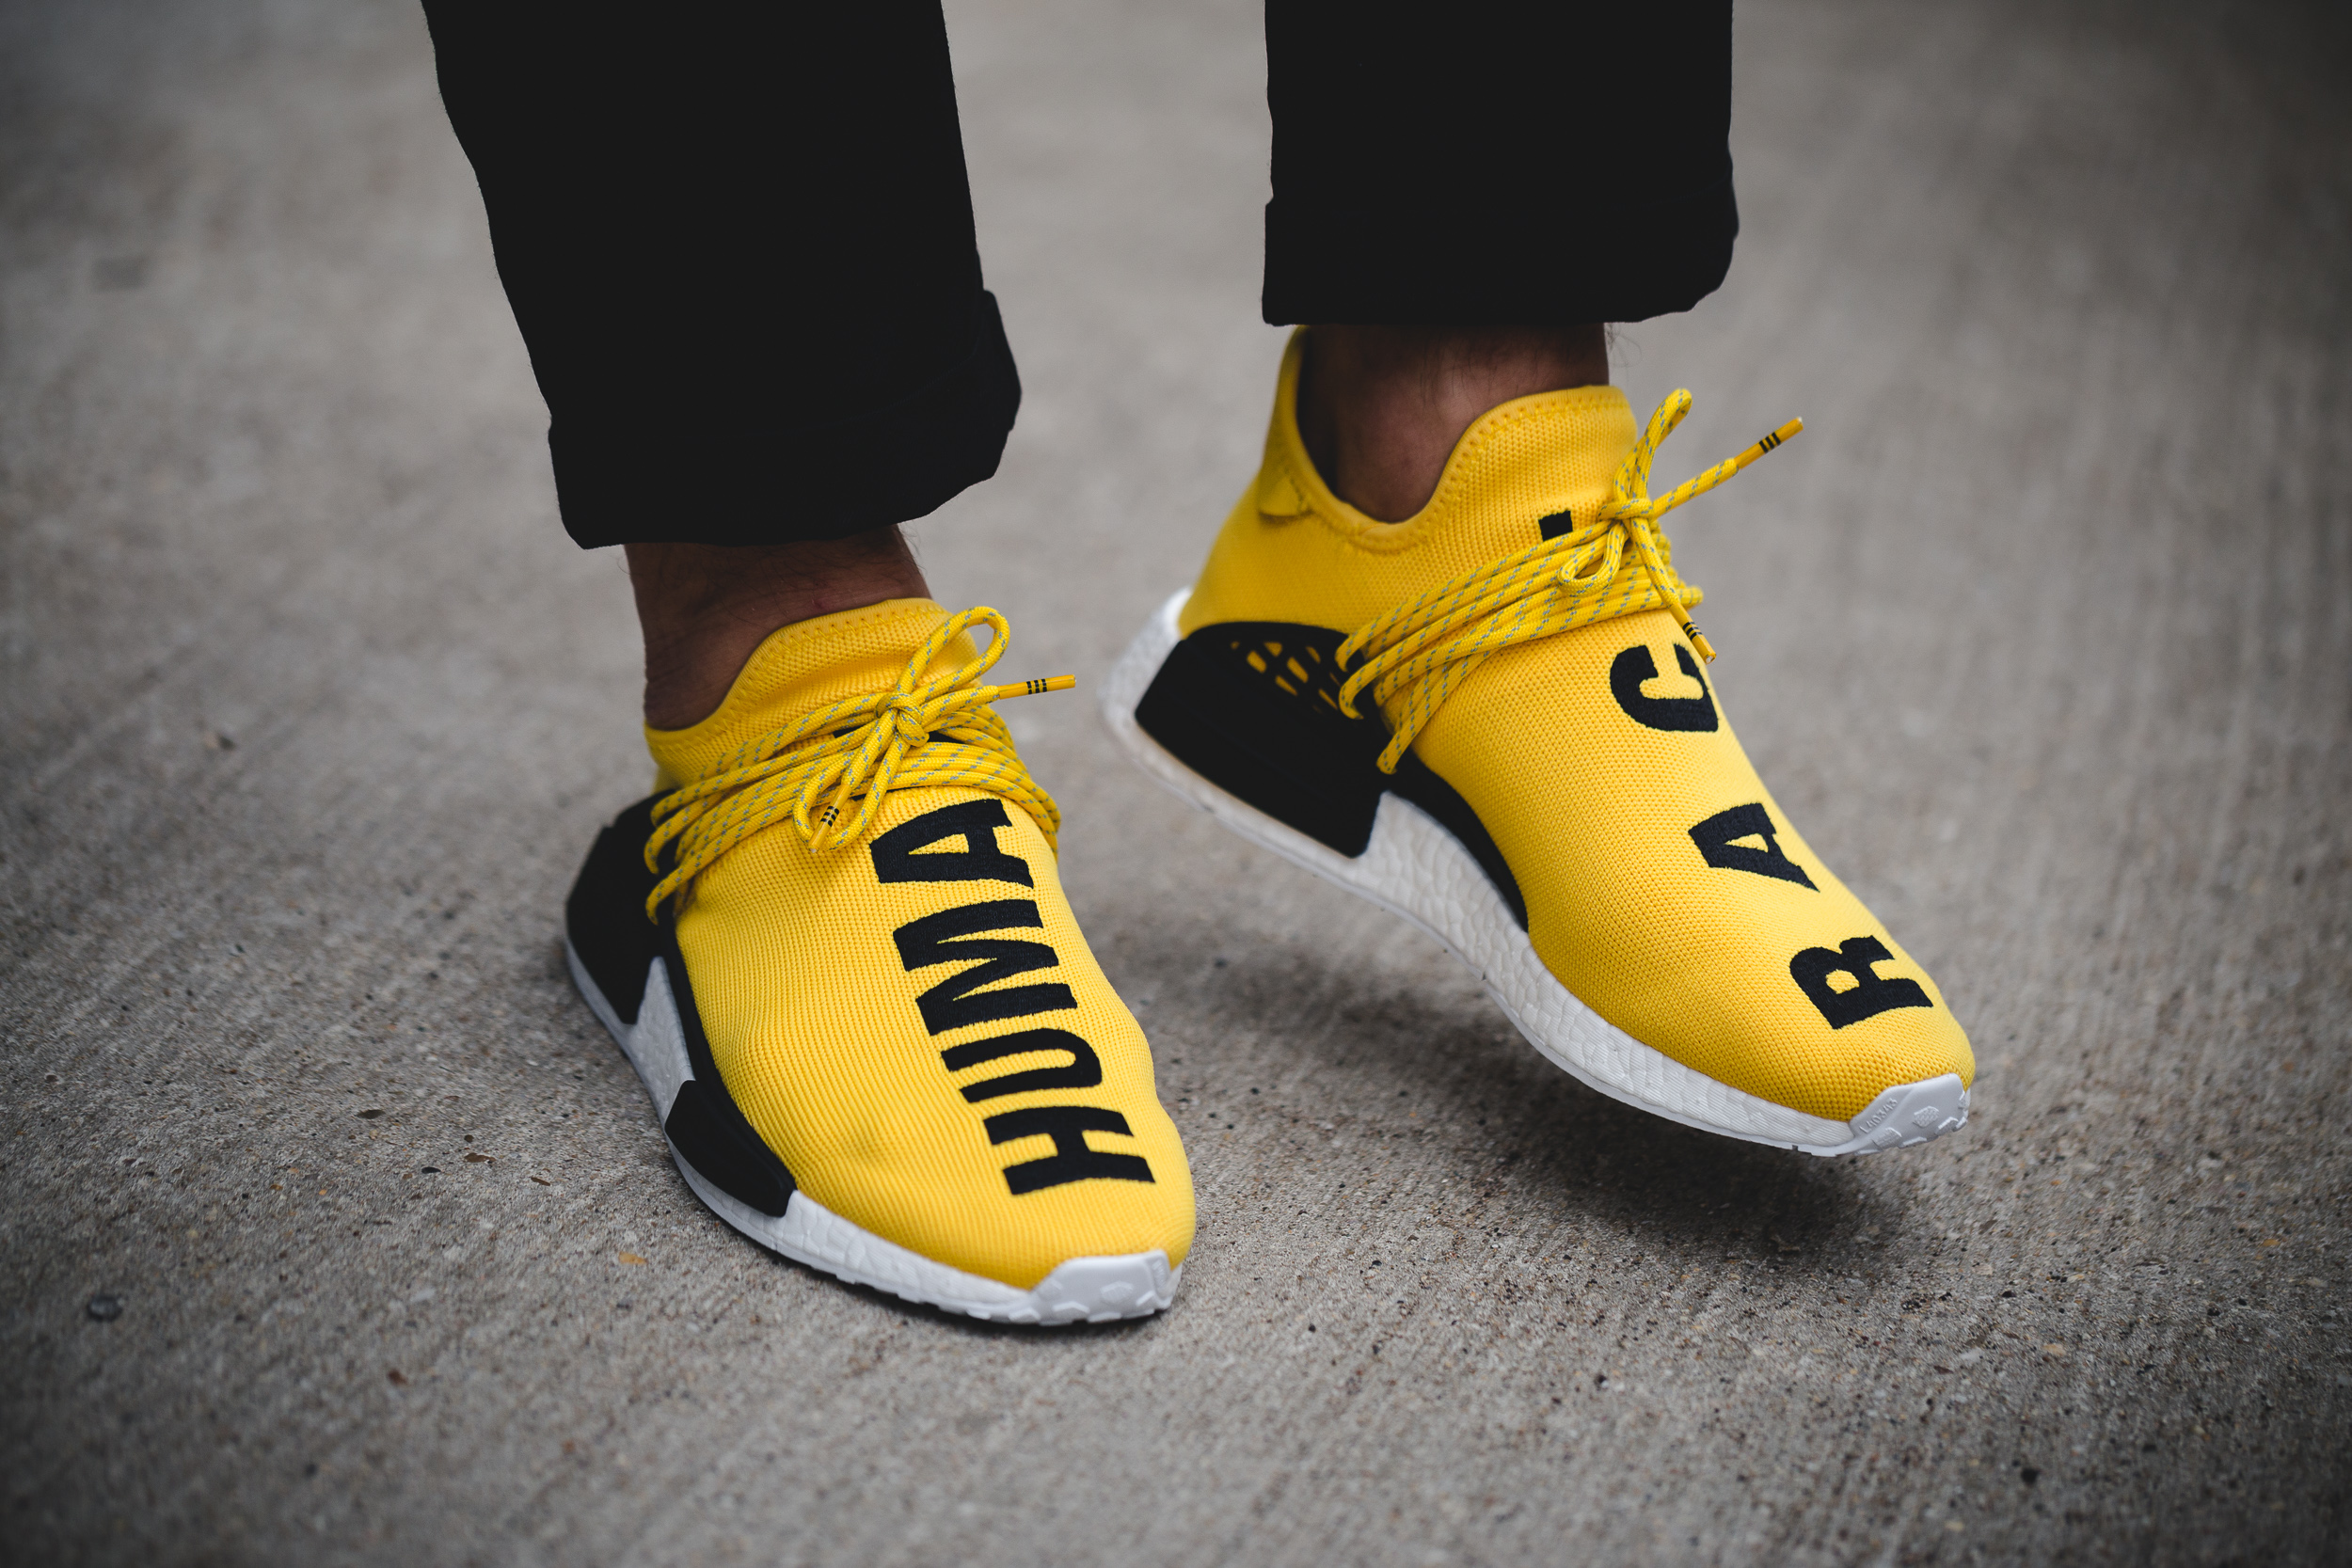 adidas Originals x Pharell Williams HU NMD